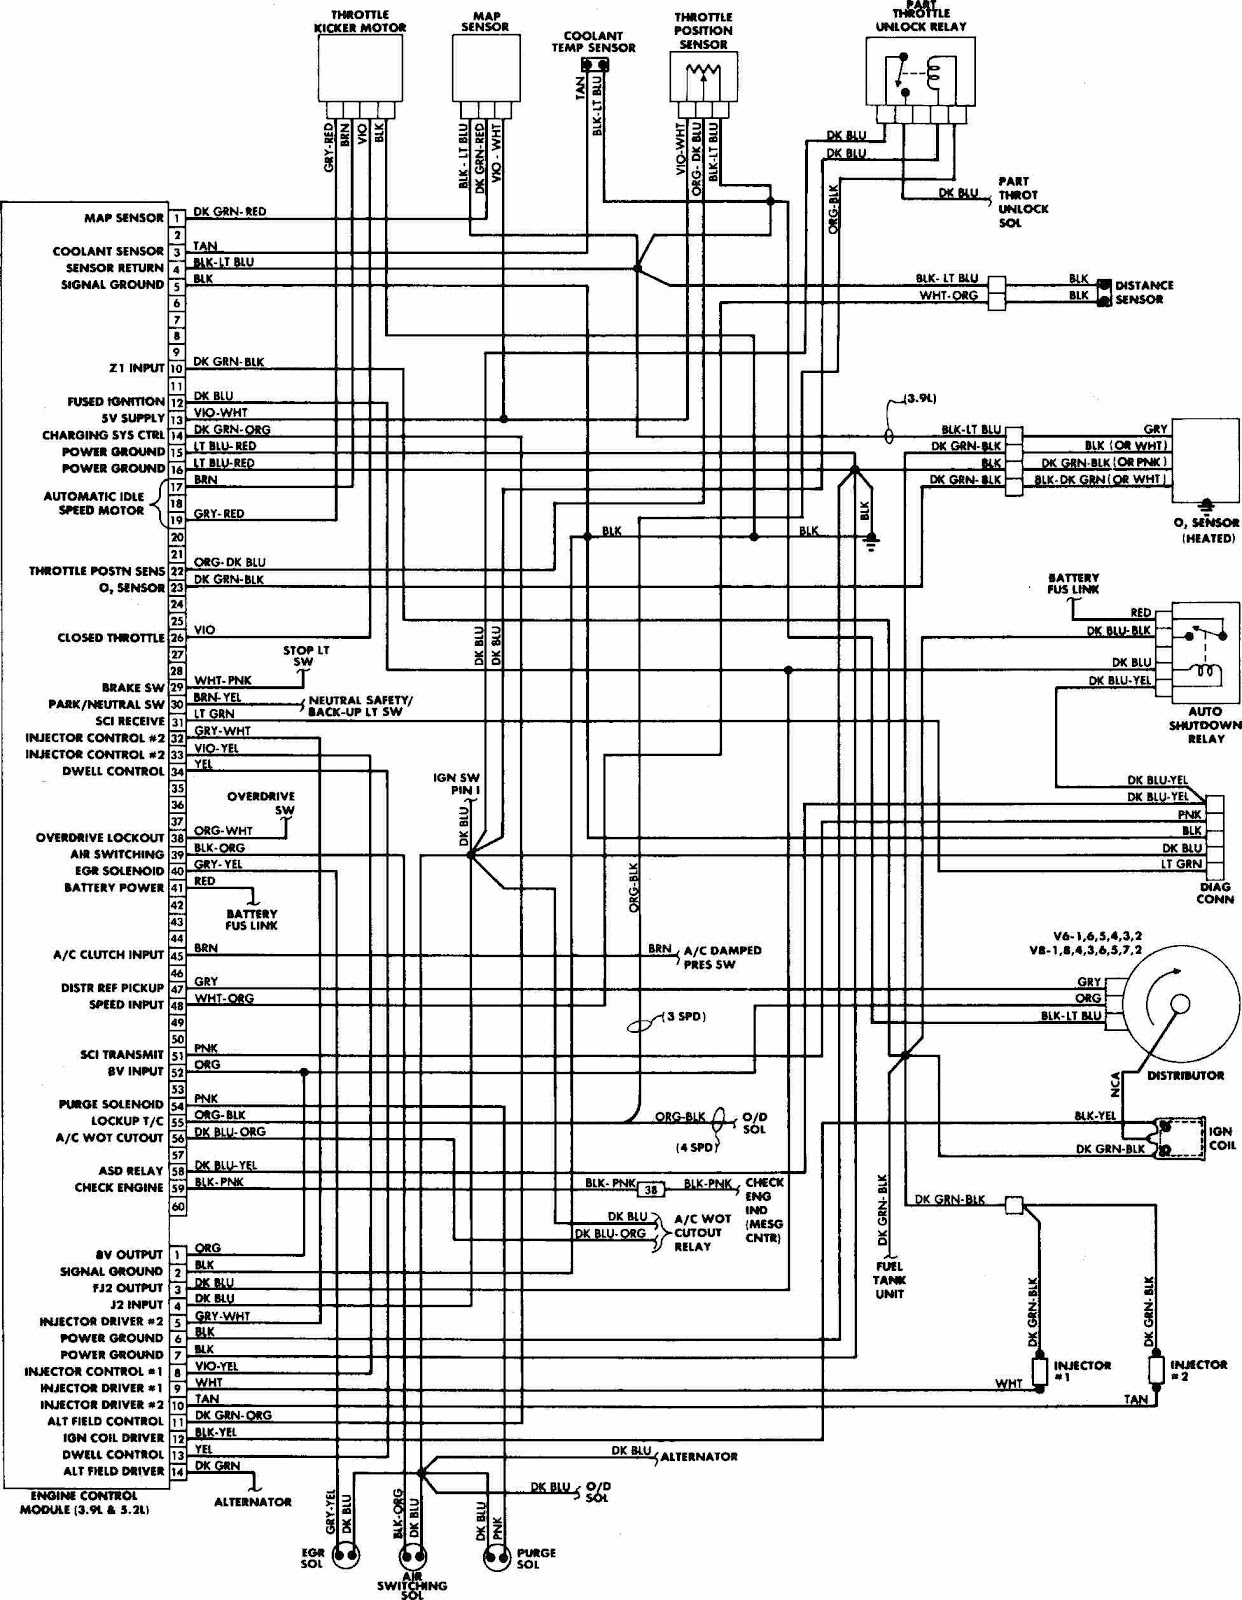 98 Expedition Wiring Diagram in addition Dodge Caravan 1996 Front Blower Motor Wiring Diagram All About together with Ford Crown Vic Fuel Pump Relay Location additionally Ford Crown Aerostar Fuse Box Diagram Usa together with 4 6l 2v Mustang Engine Diagram. on ford explorer wiring diagram radio